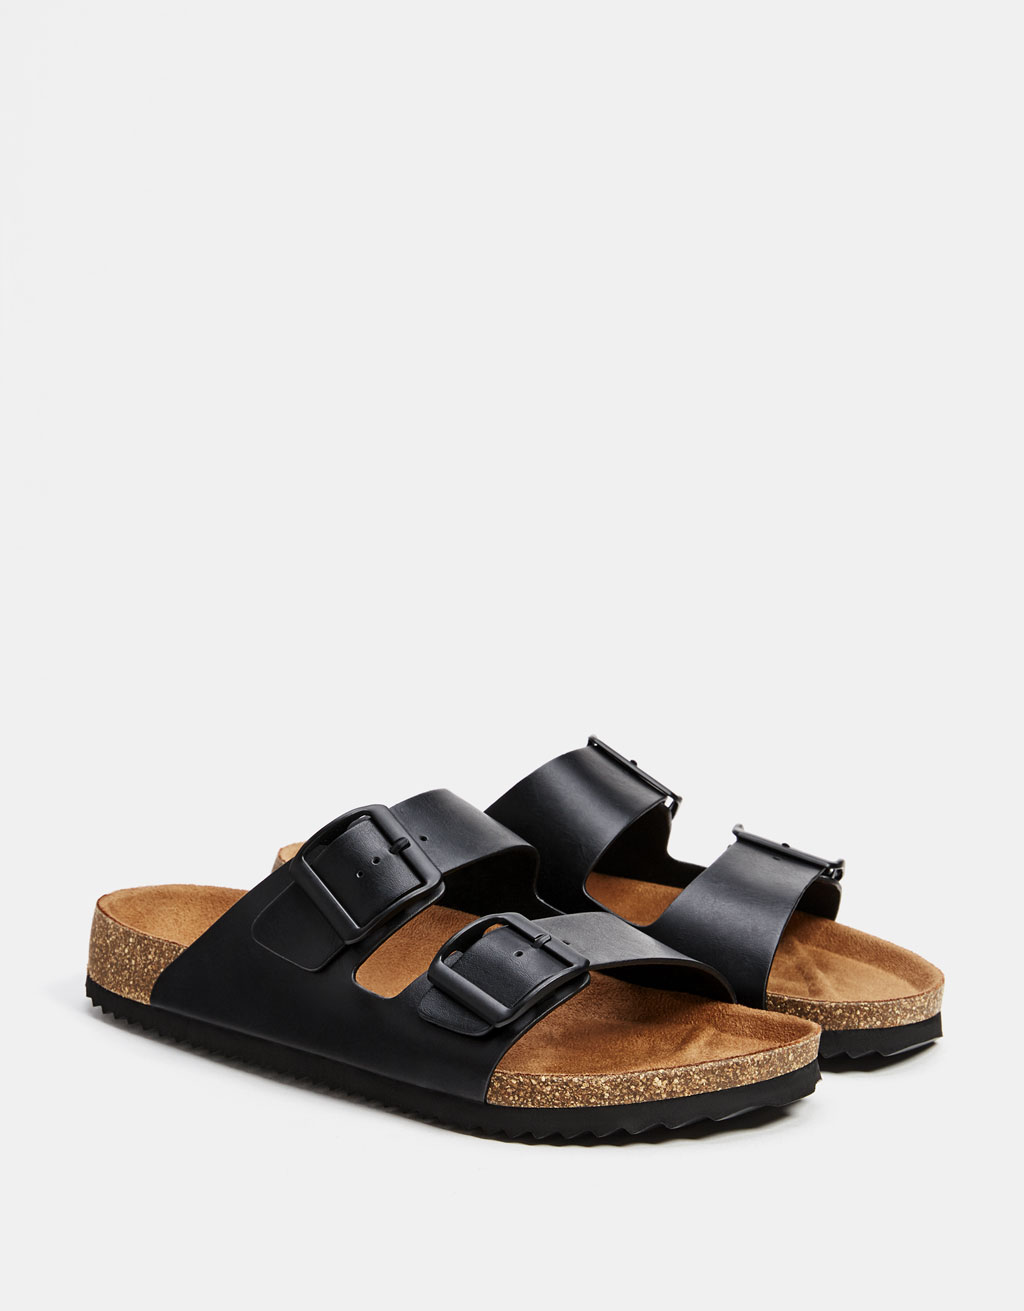 Men's buckle sandal